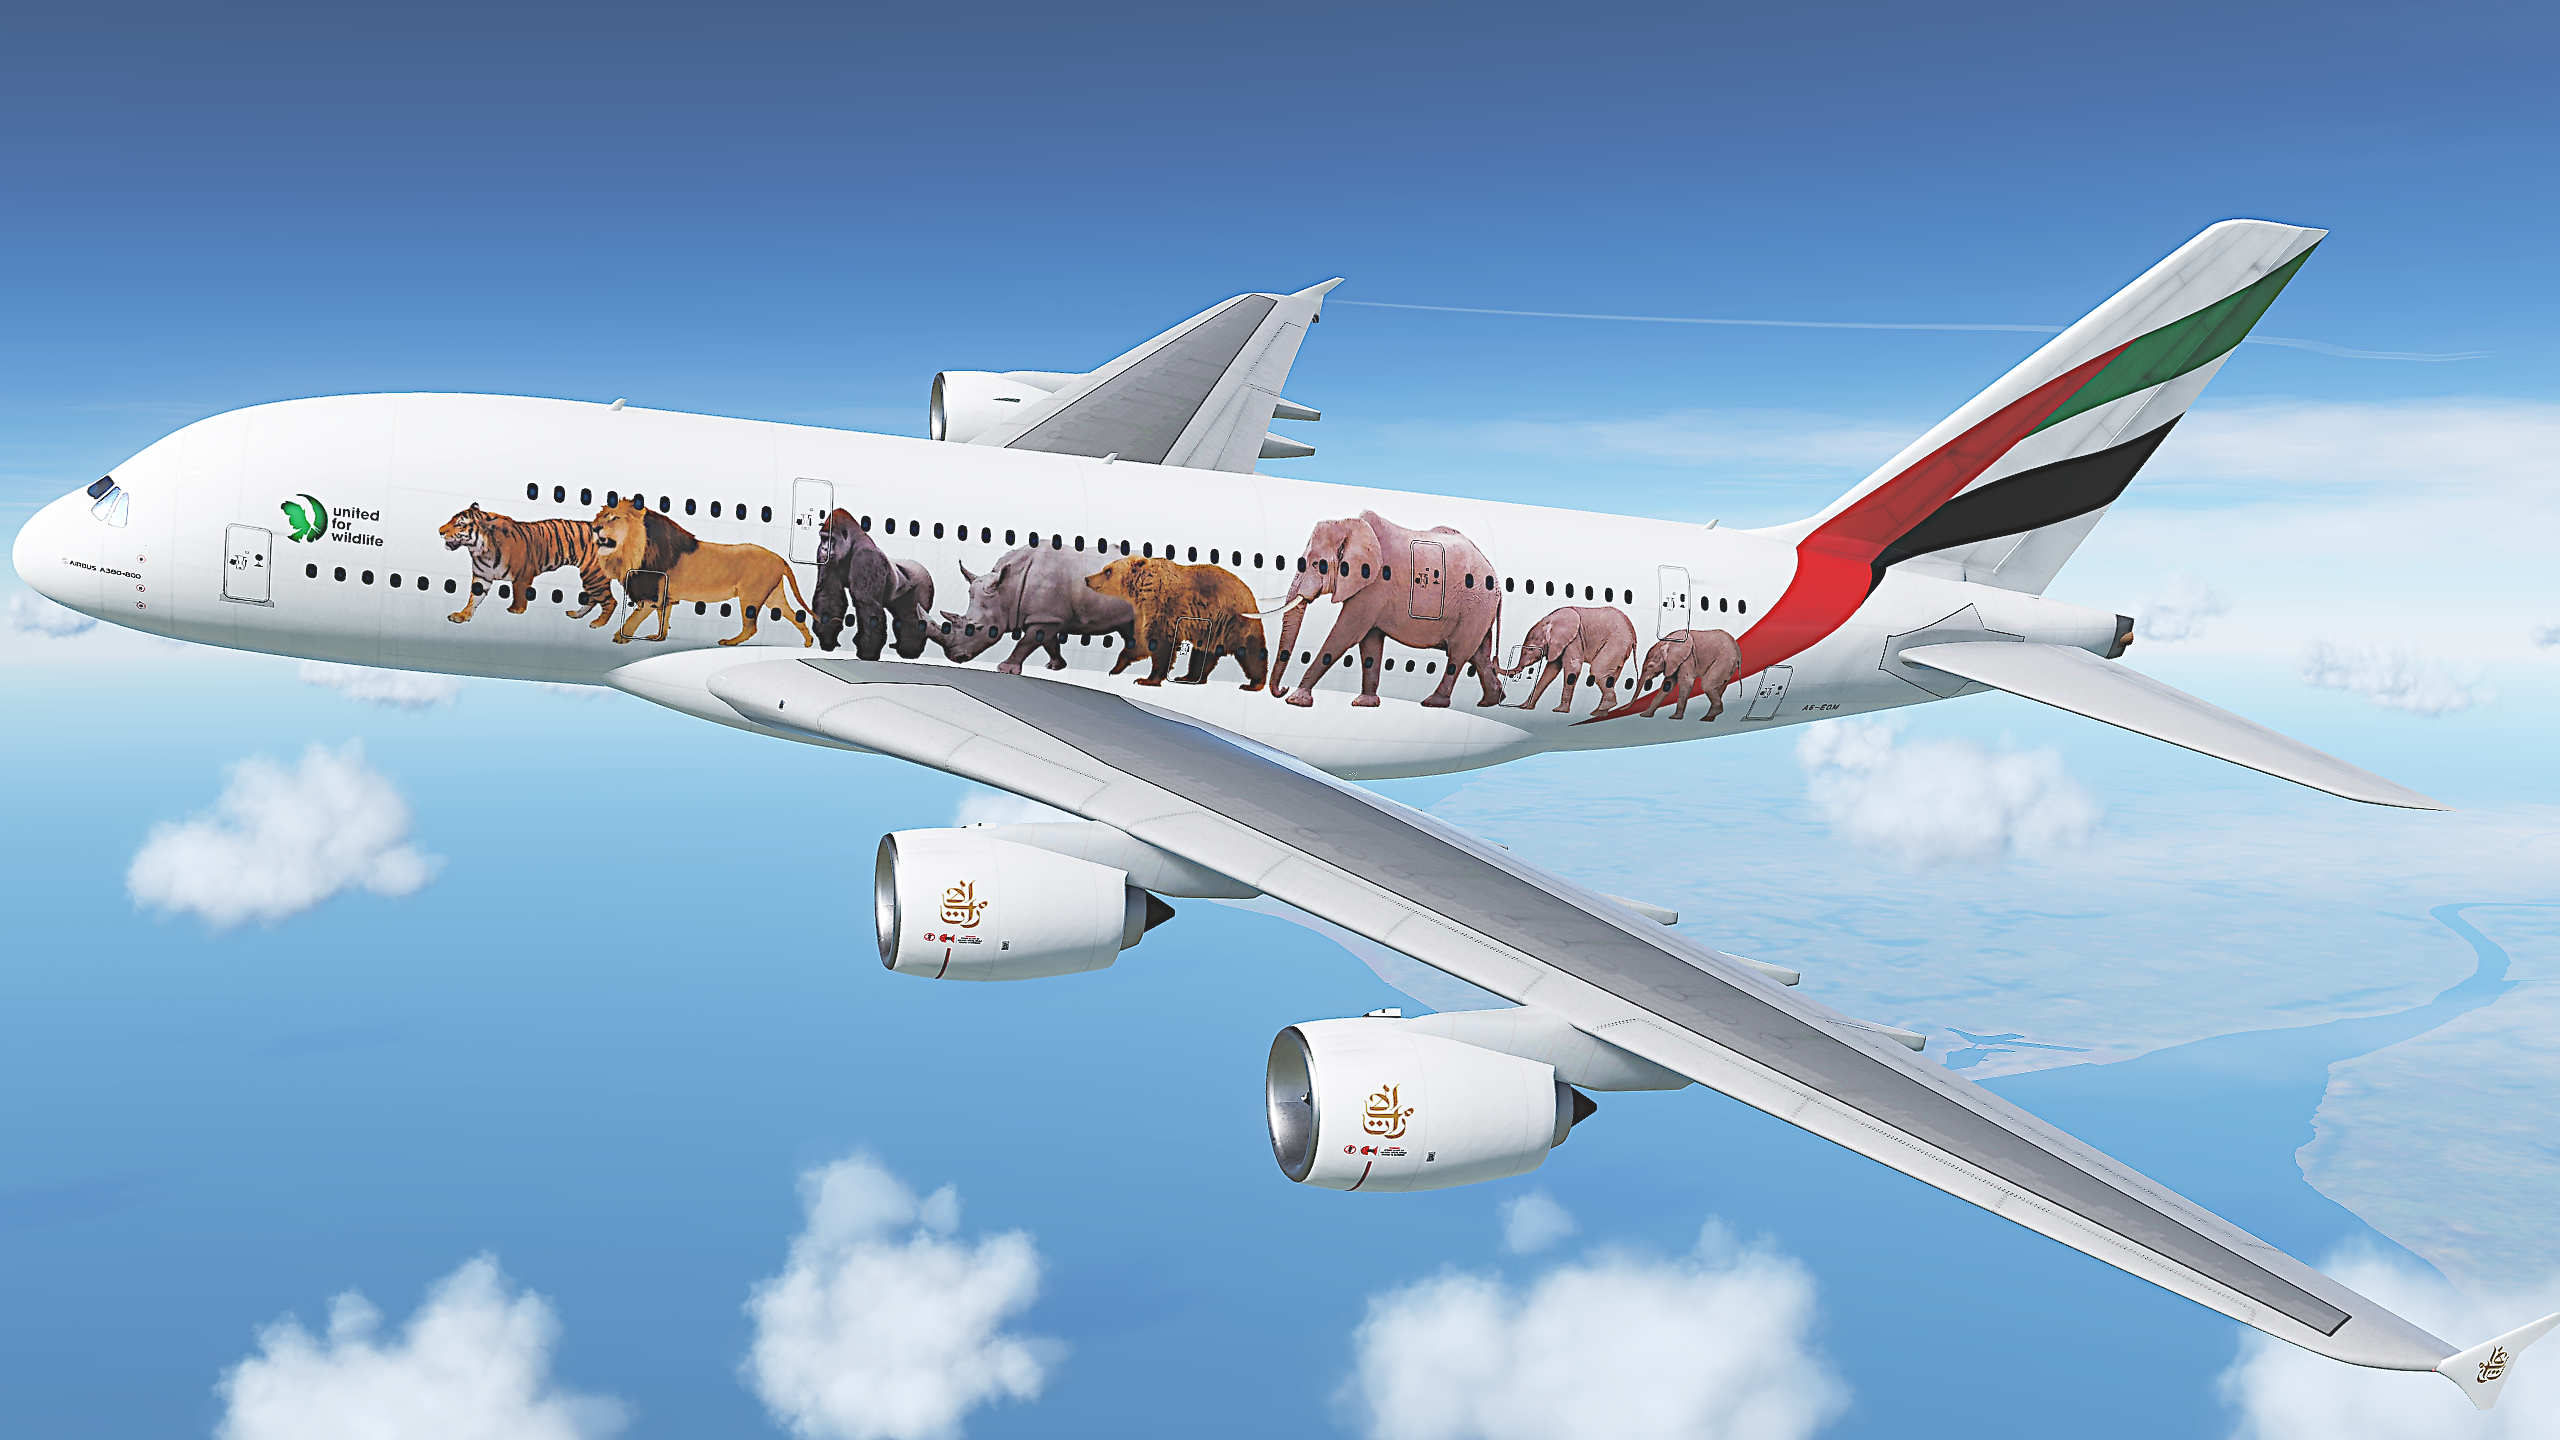 Airbus_A380  Emirates 'United  for Wildlife'  Serial Number...A6-EOM